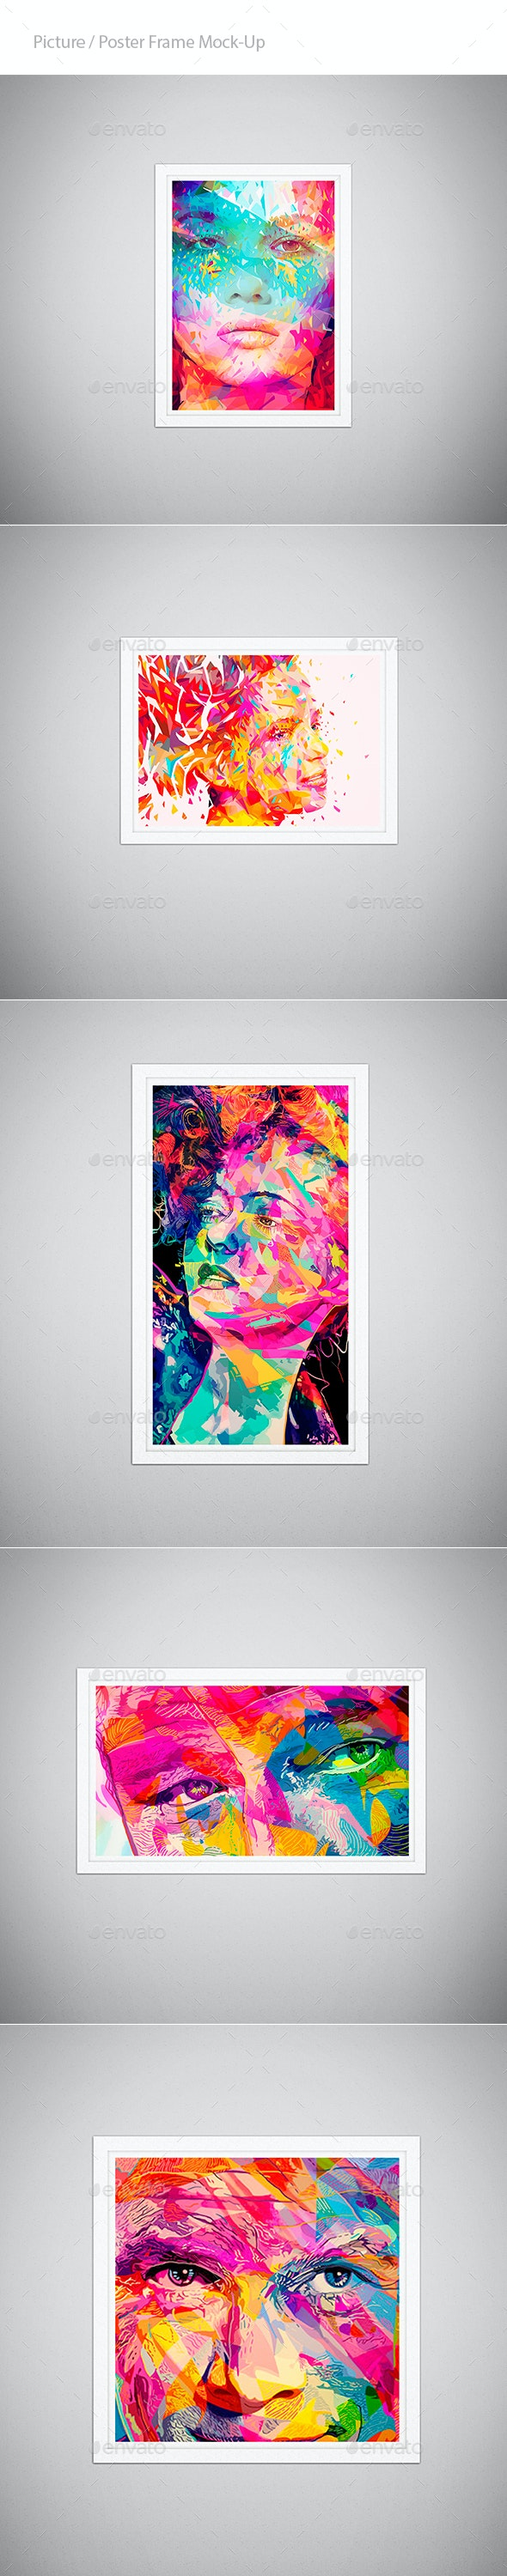 Picture / Poster Frame Mock-Up  - Posters Print